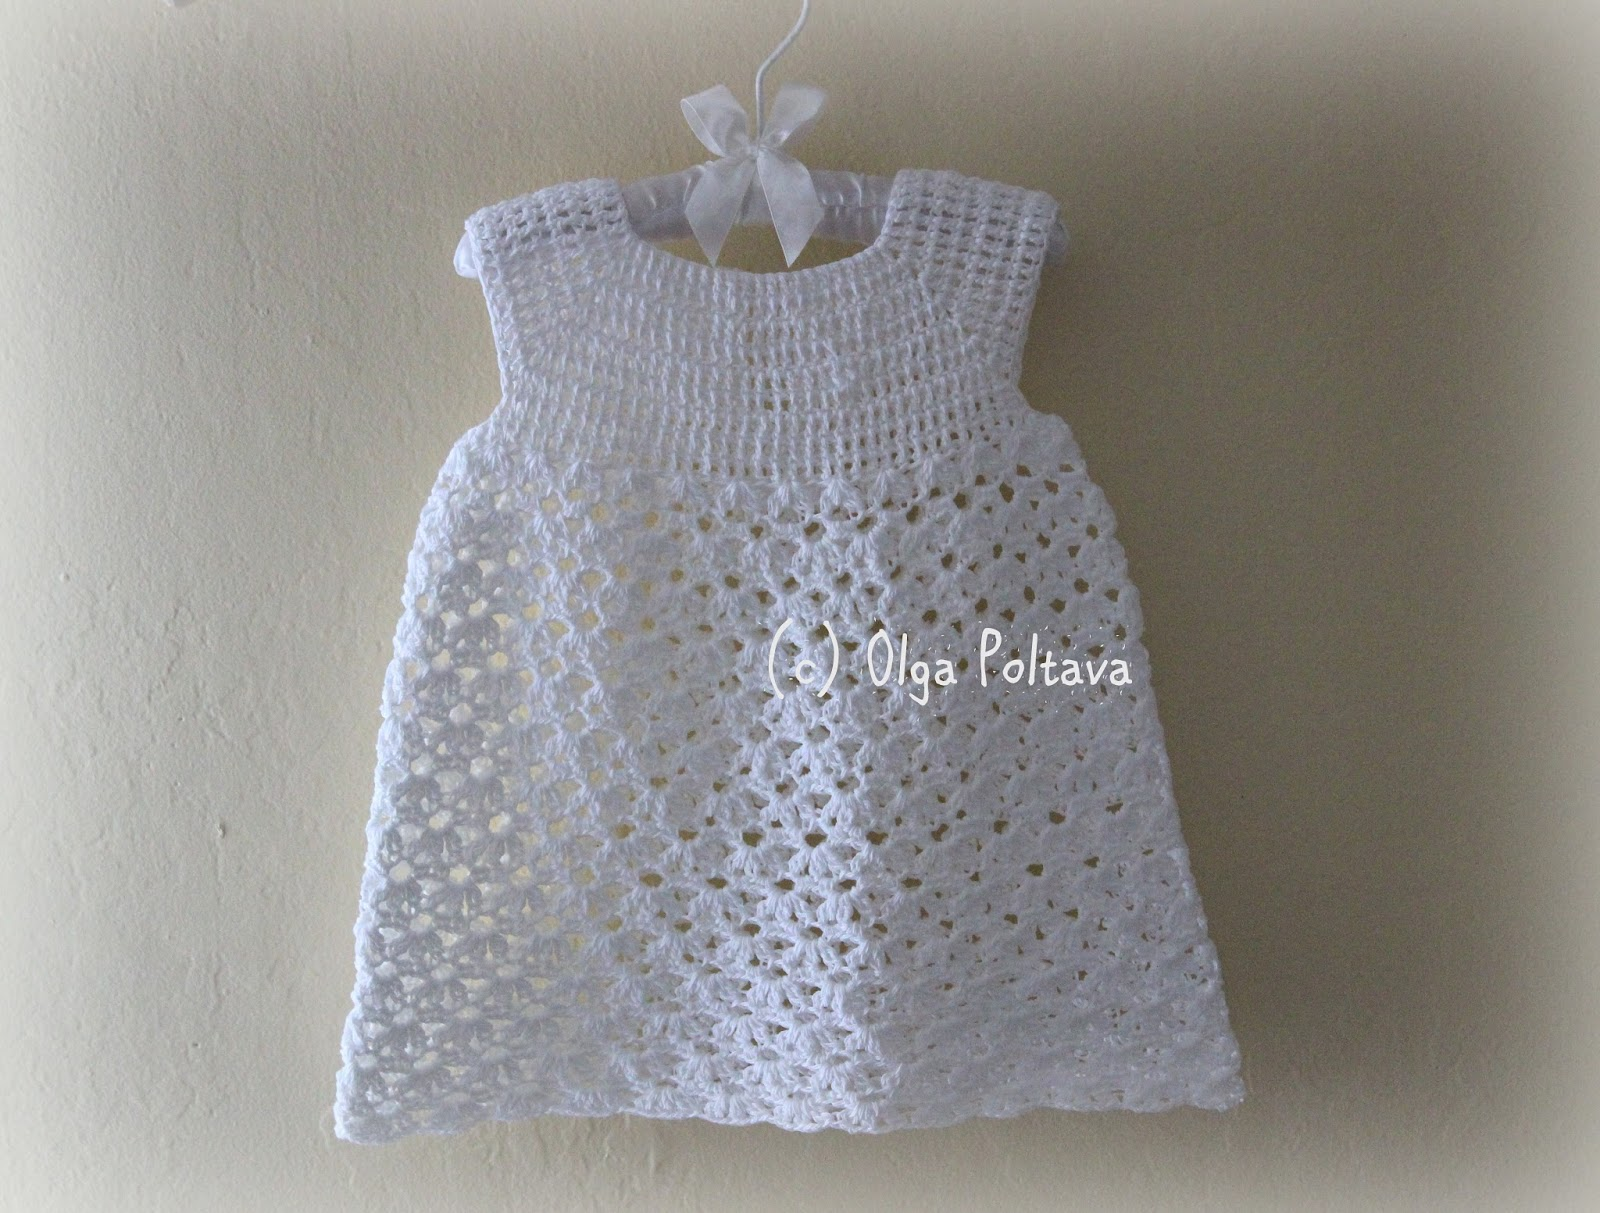 Crochet Baby Winter Dress Pattern : Lacy Crochet: Two New Patterns: Baby Dress and Girls Hat